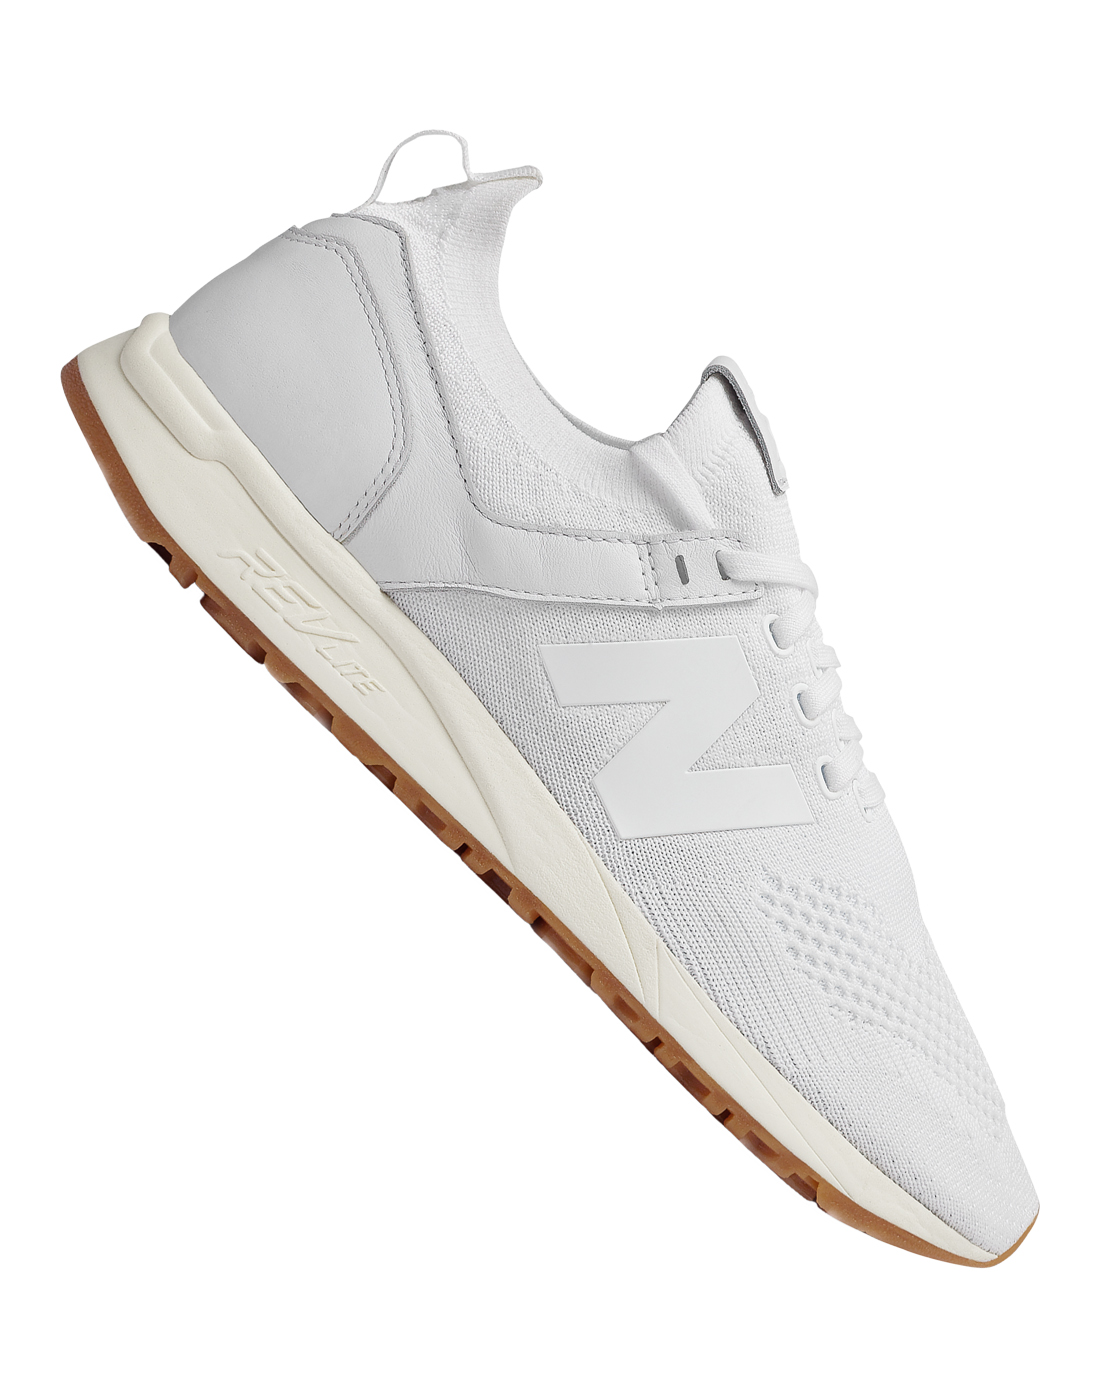 celtic new balance trainers adults 247, OFF 78%,Buy!